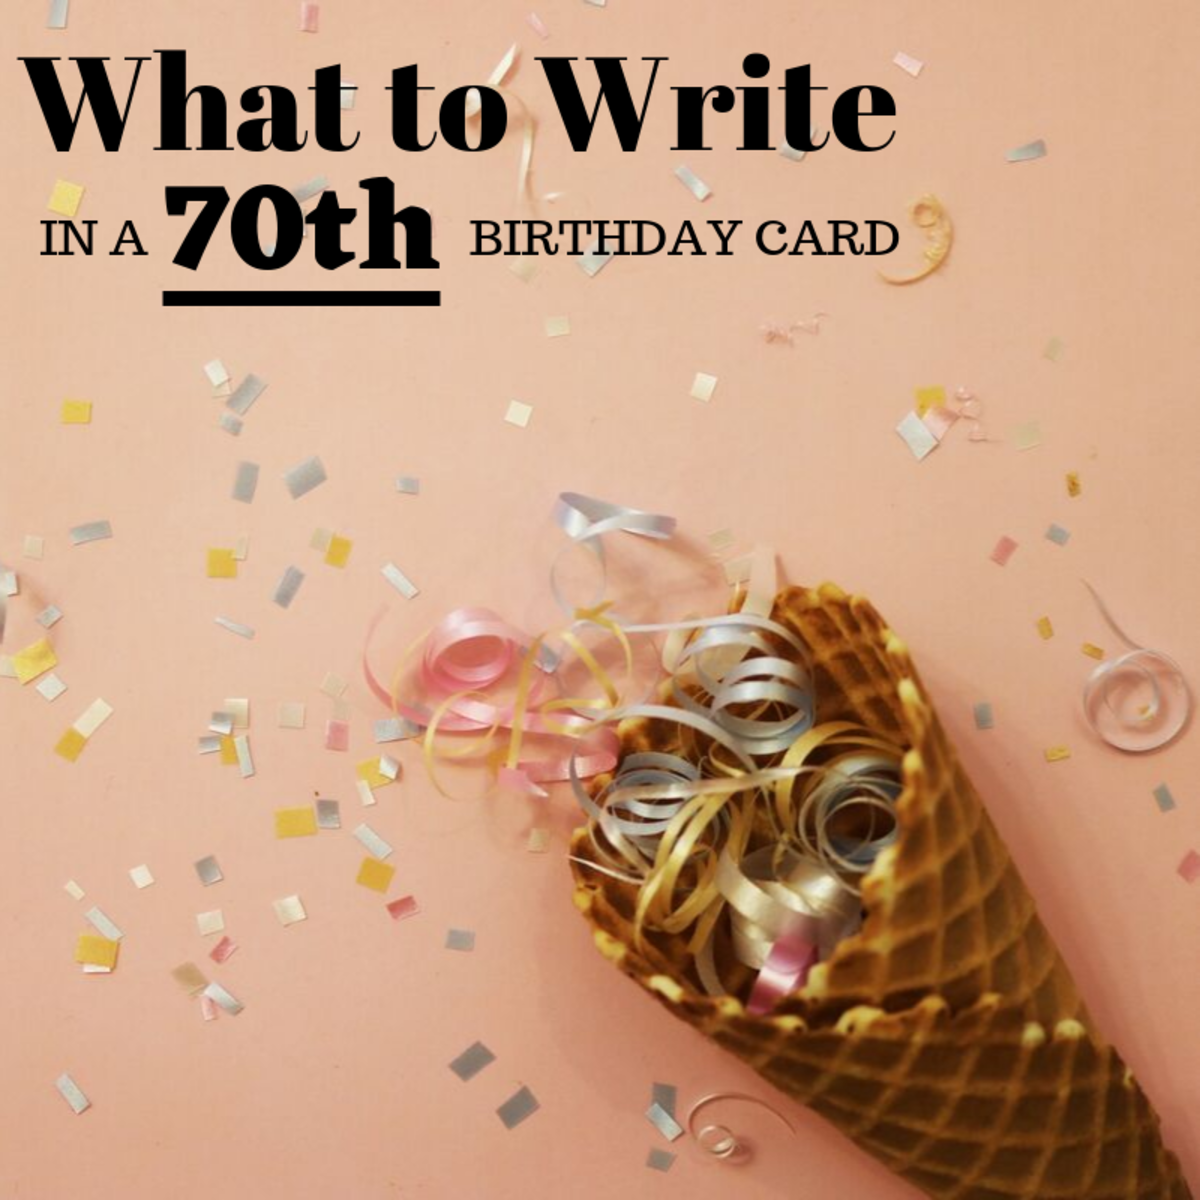 70th Birthday Wishes, Sayings, and Quotes to Write in a Card